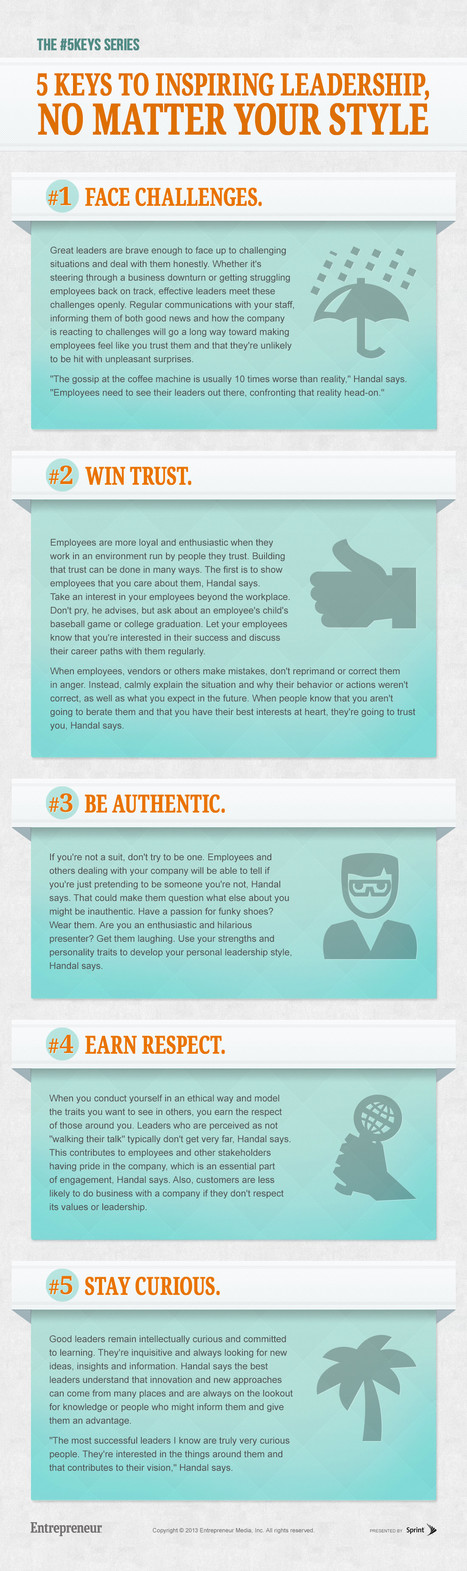 5 Keys to Inspiring Leadership, No Matter Your Style [Infographic] | Content Creation, Curation, Management | Scoop.it